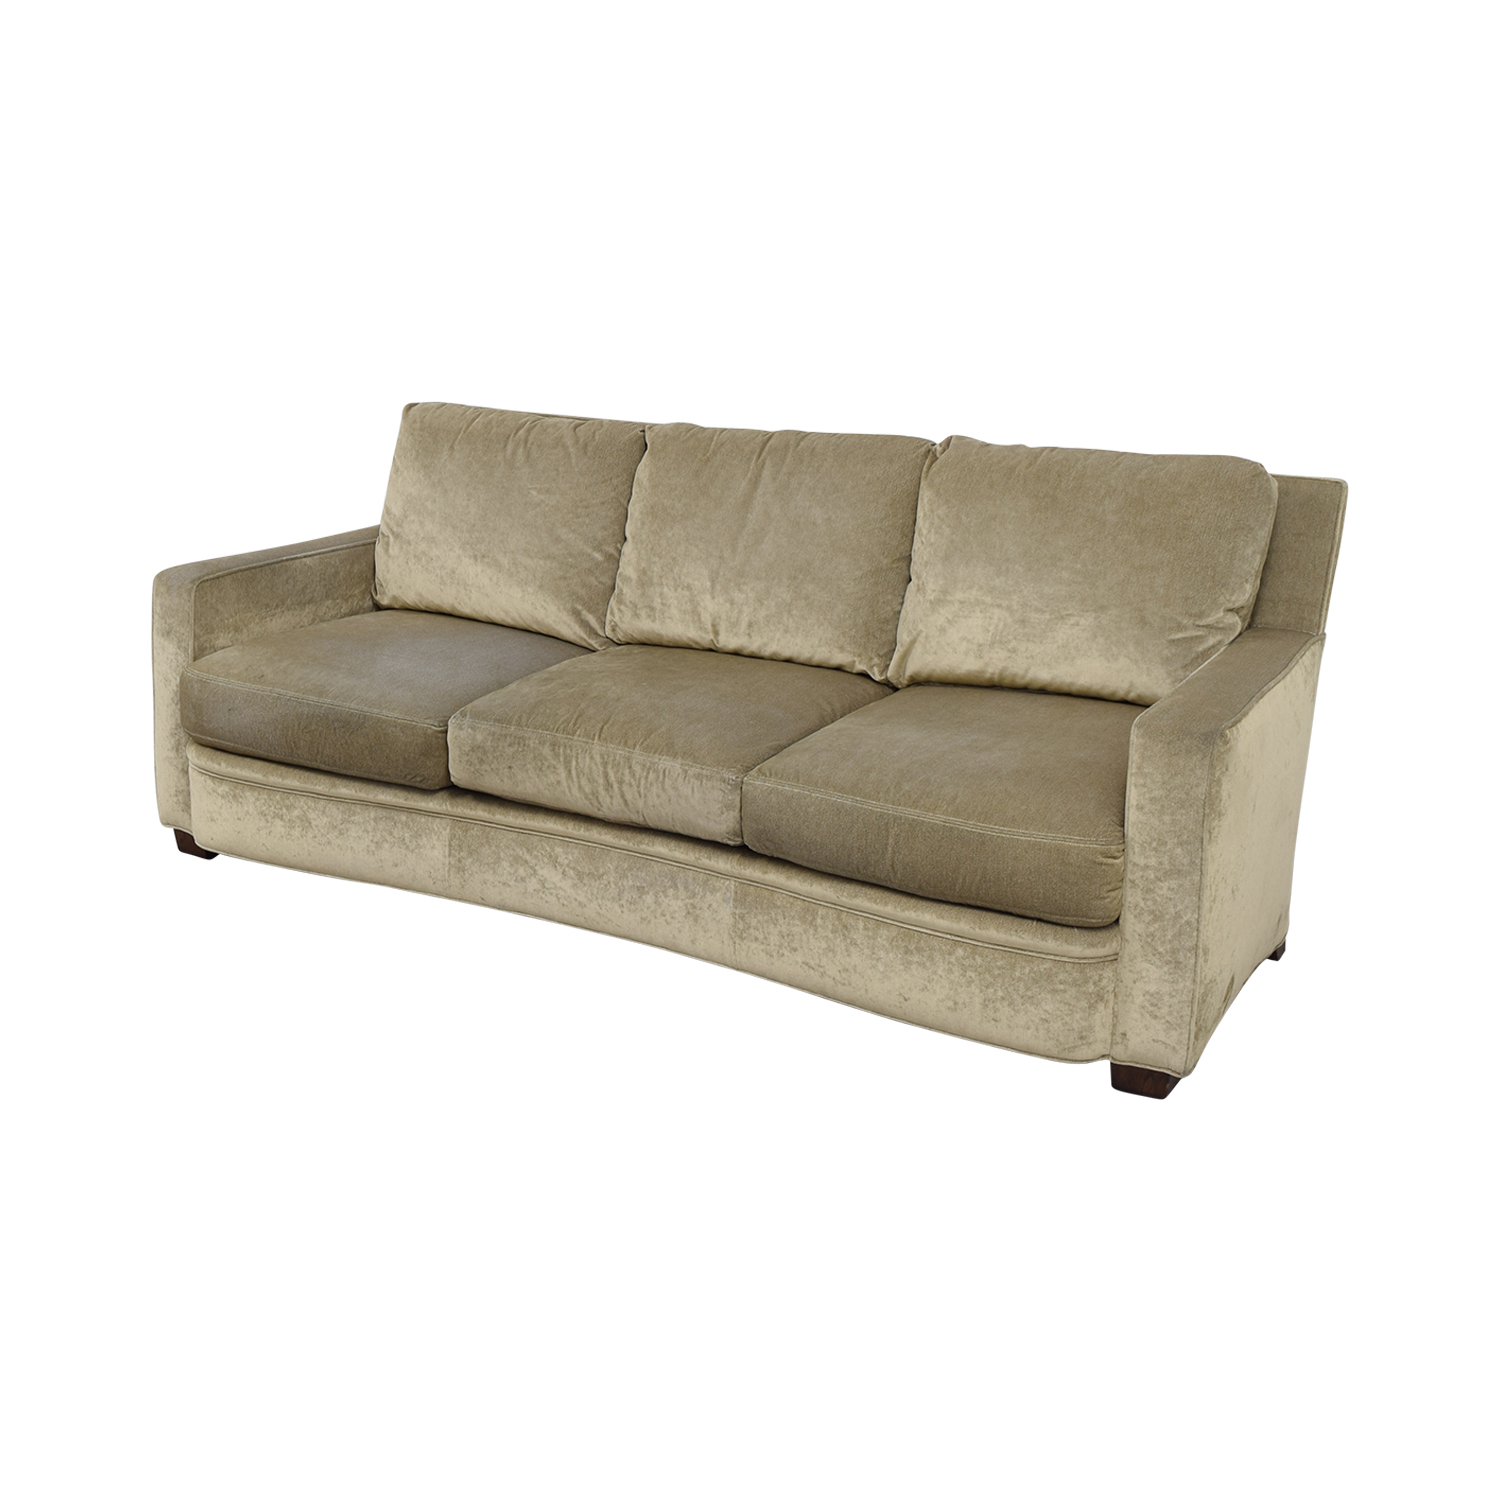 buy Kravit Furniture Kravit Furniture Beige Three-Cushion Curved Sofa online